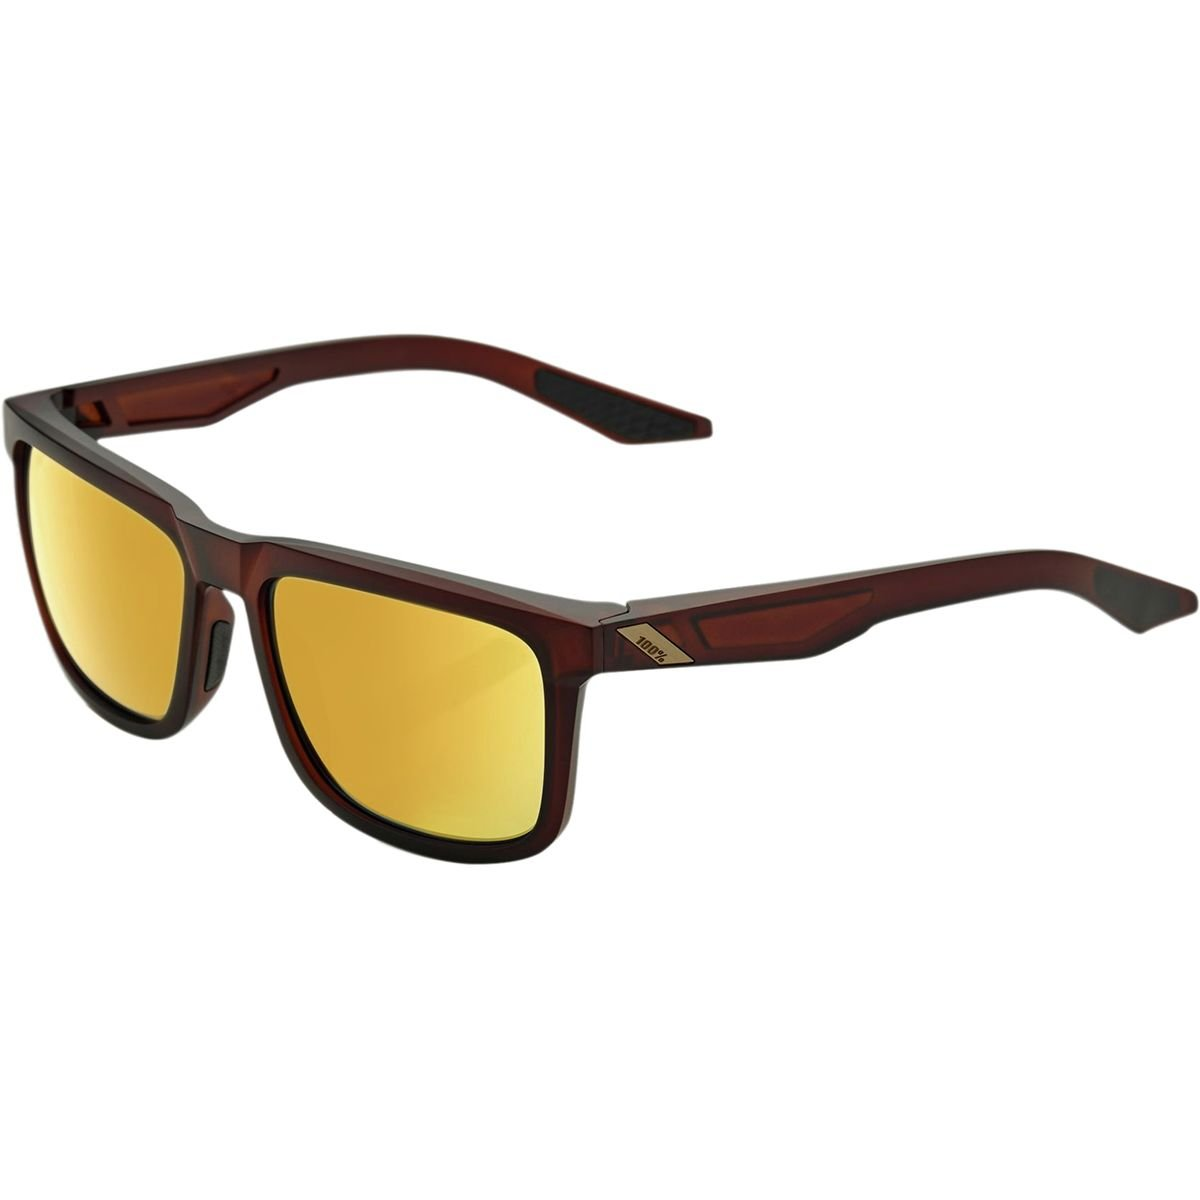 100% Unisex-Adult Speedlab (61029-103-69) Blake-Soft Tact Rootbeer-Flash Gold Lens, Free Size